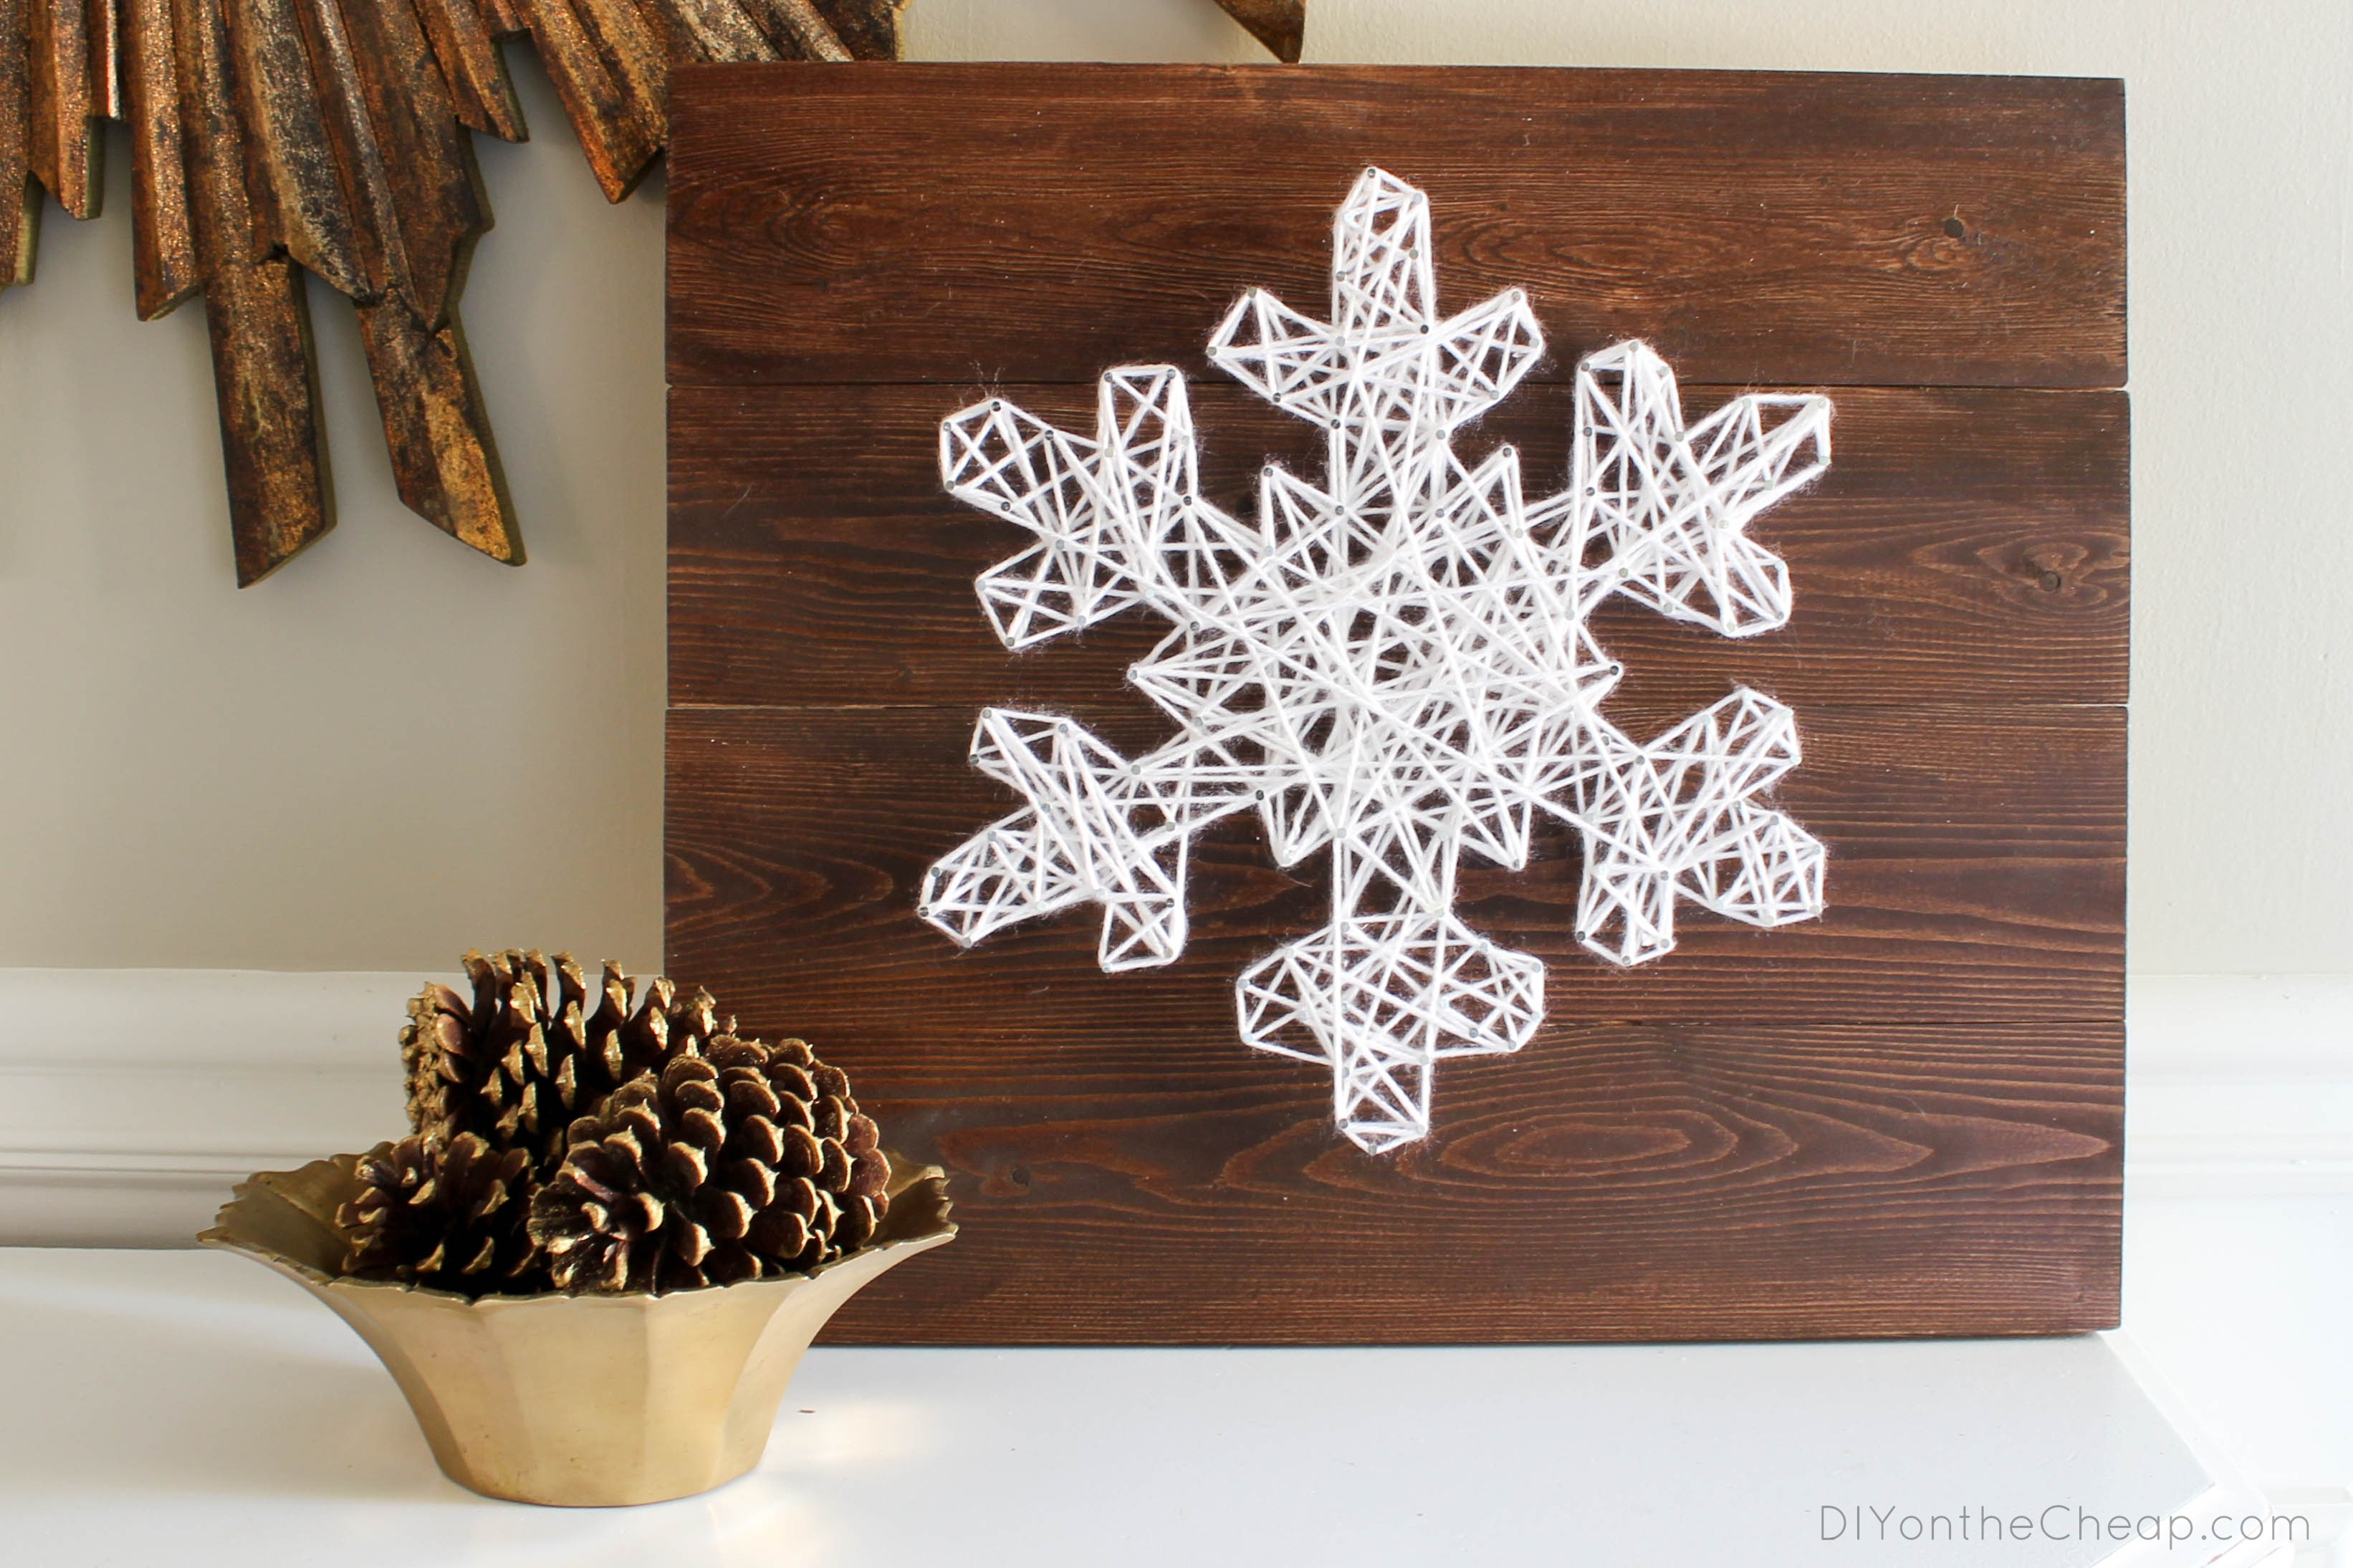 DIY Snowflake String Art + 18 Easy to Build Christmas Projects - Erin Spain